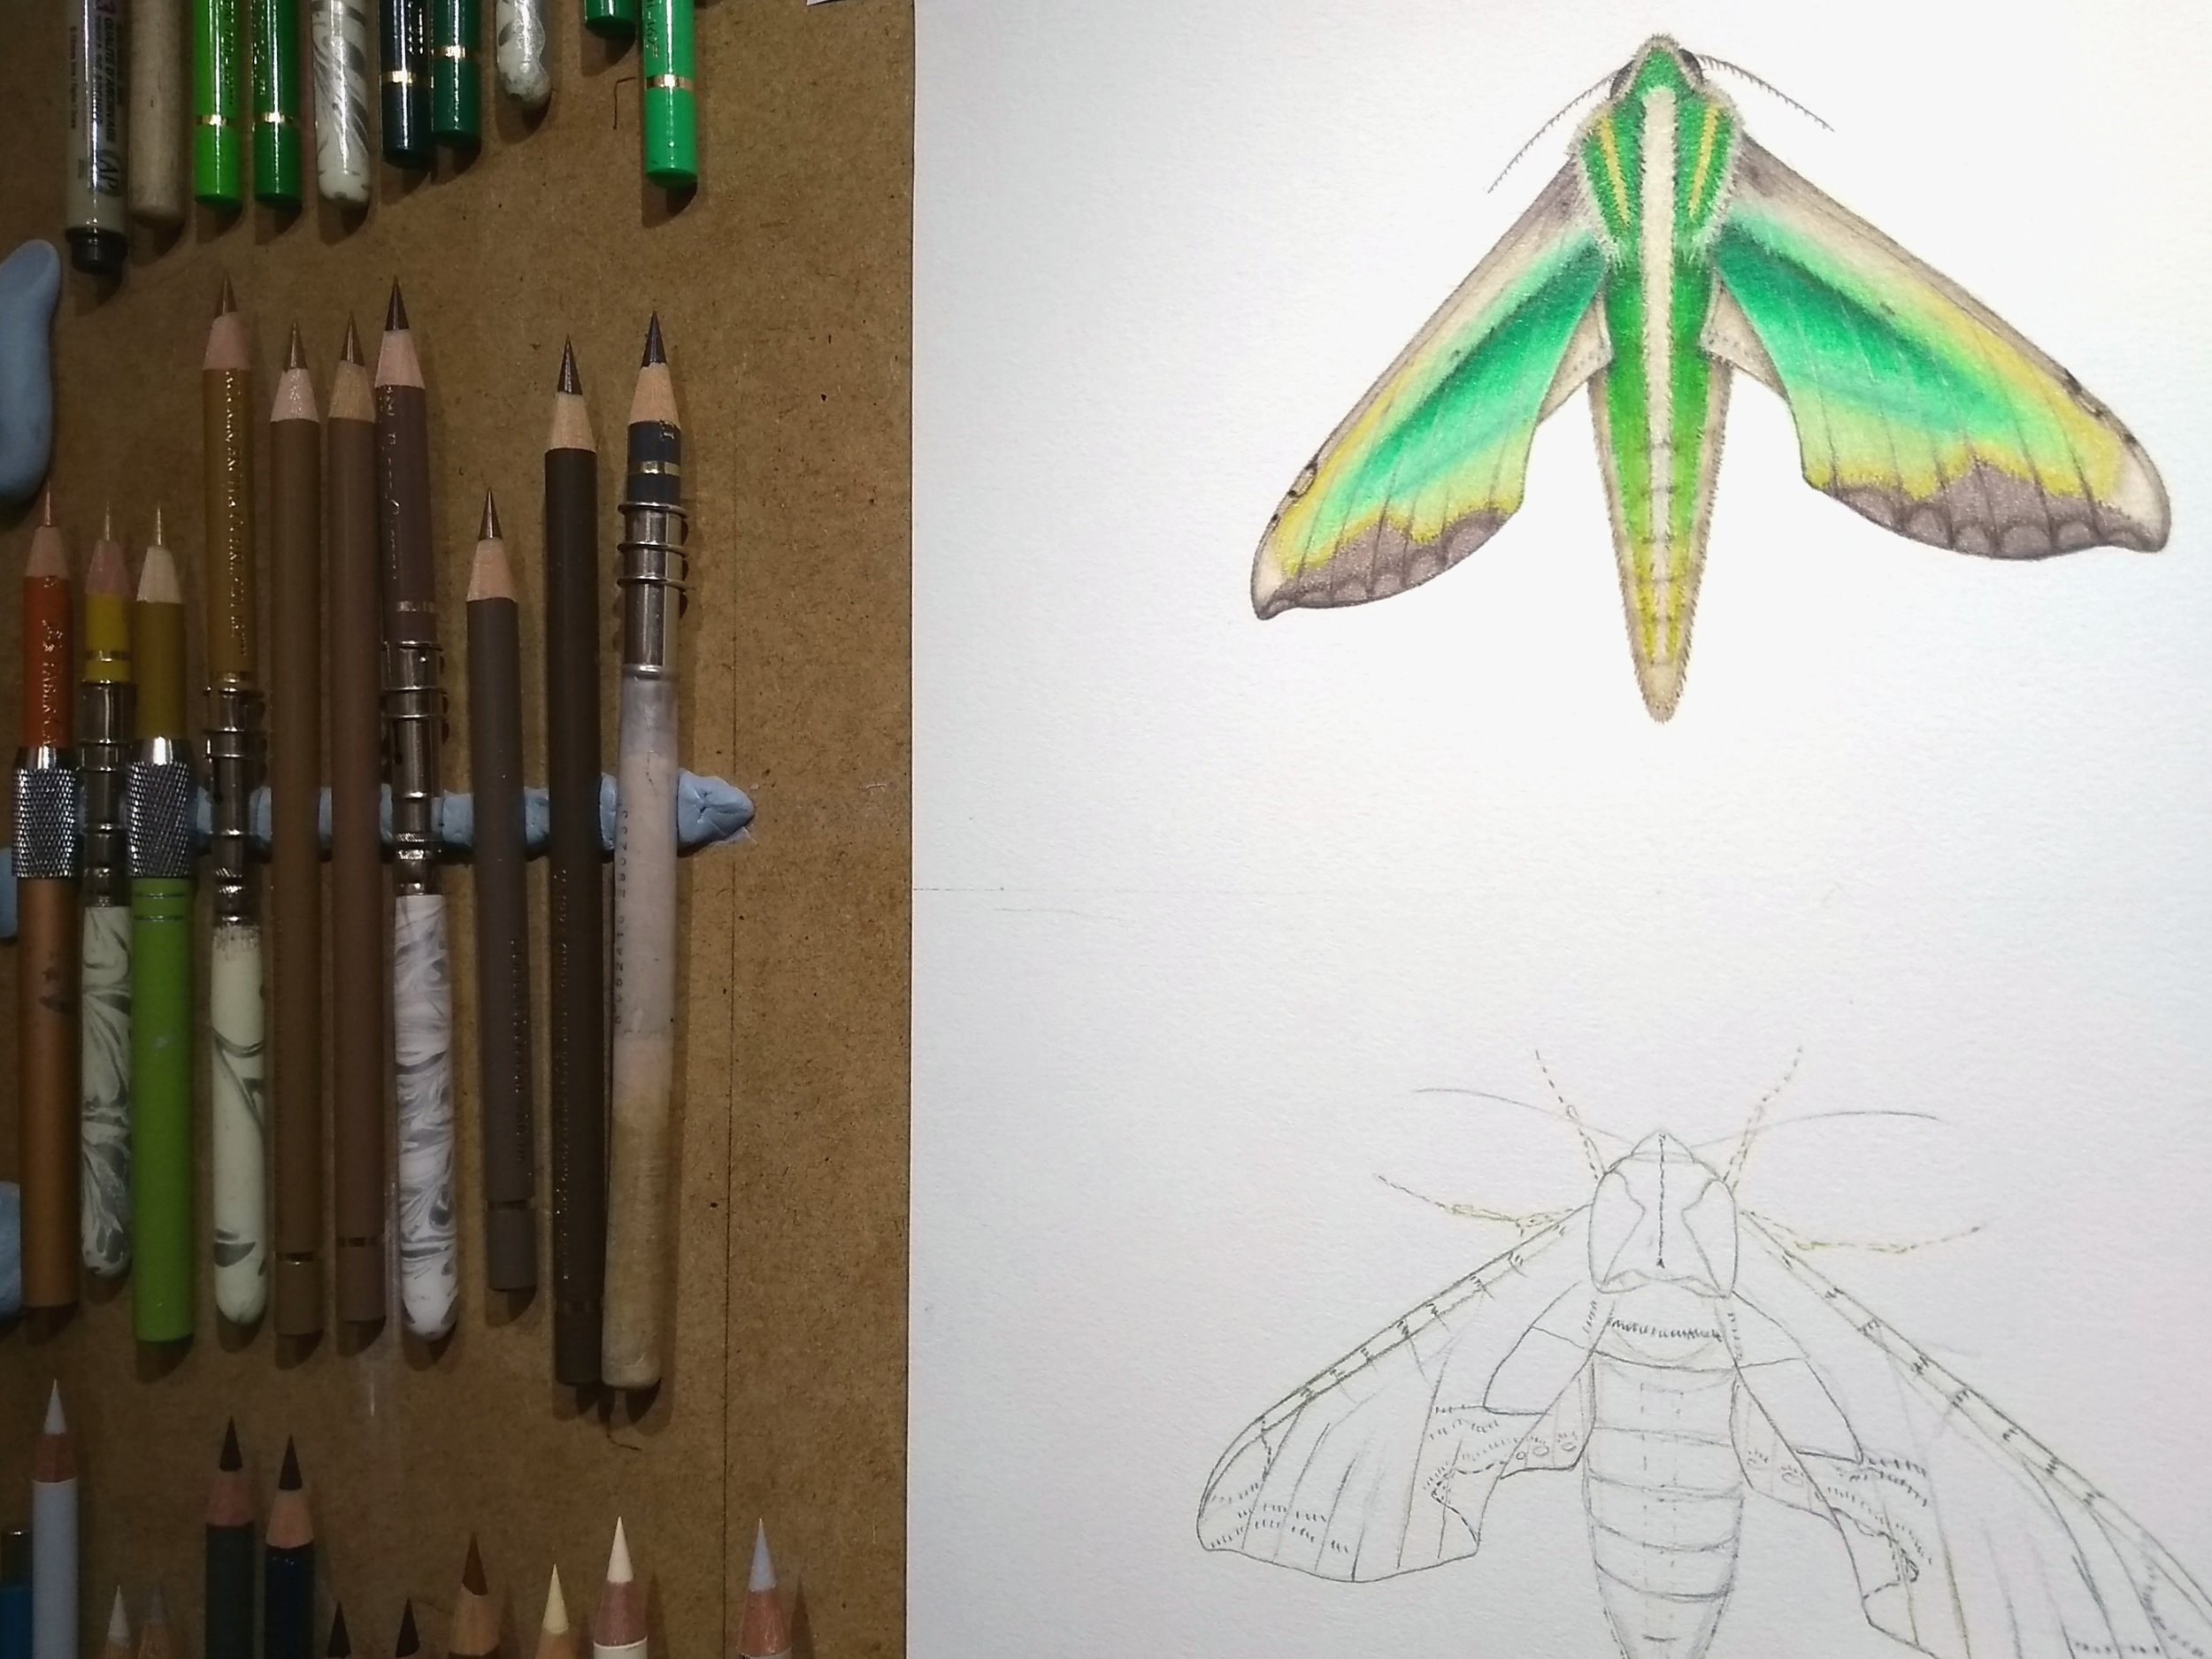 Image description; a full WIP series of a green and brown hawkmoth -  Pergesa acteus  - being drawn in colour pencil.